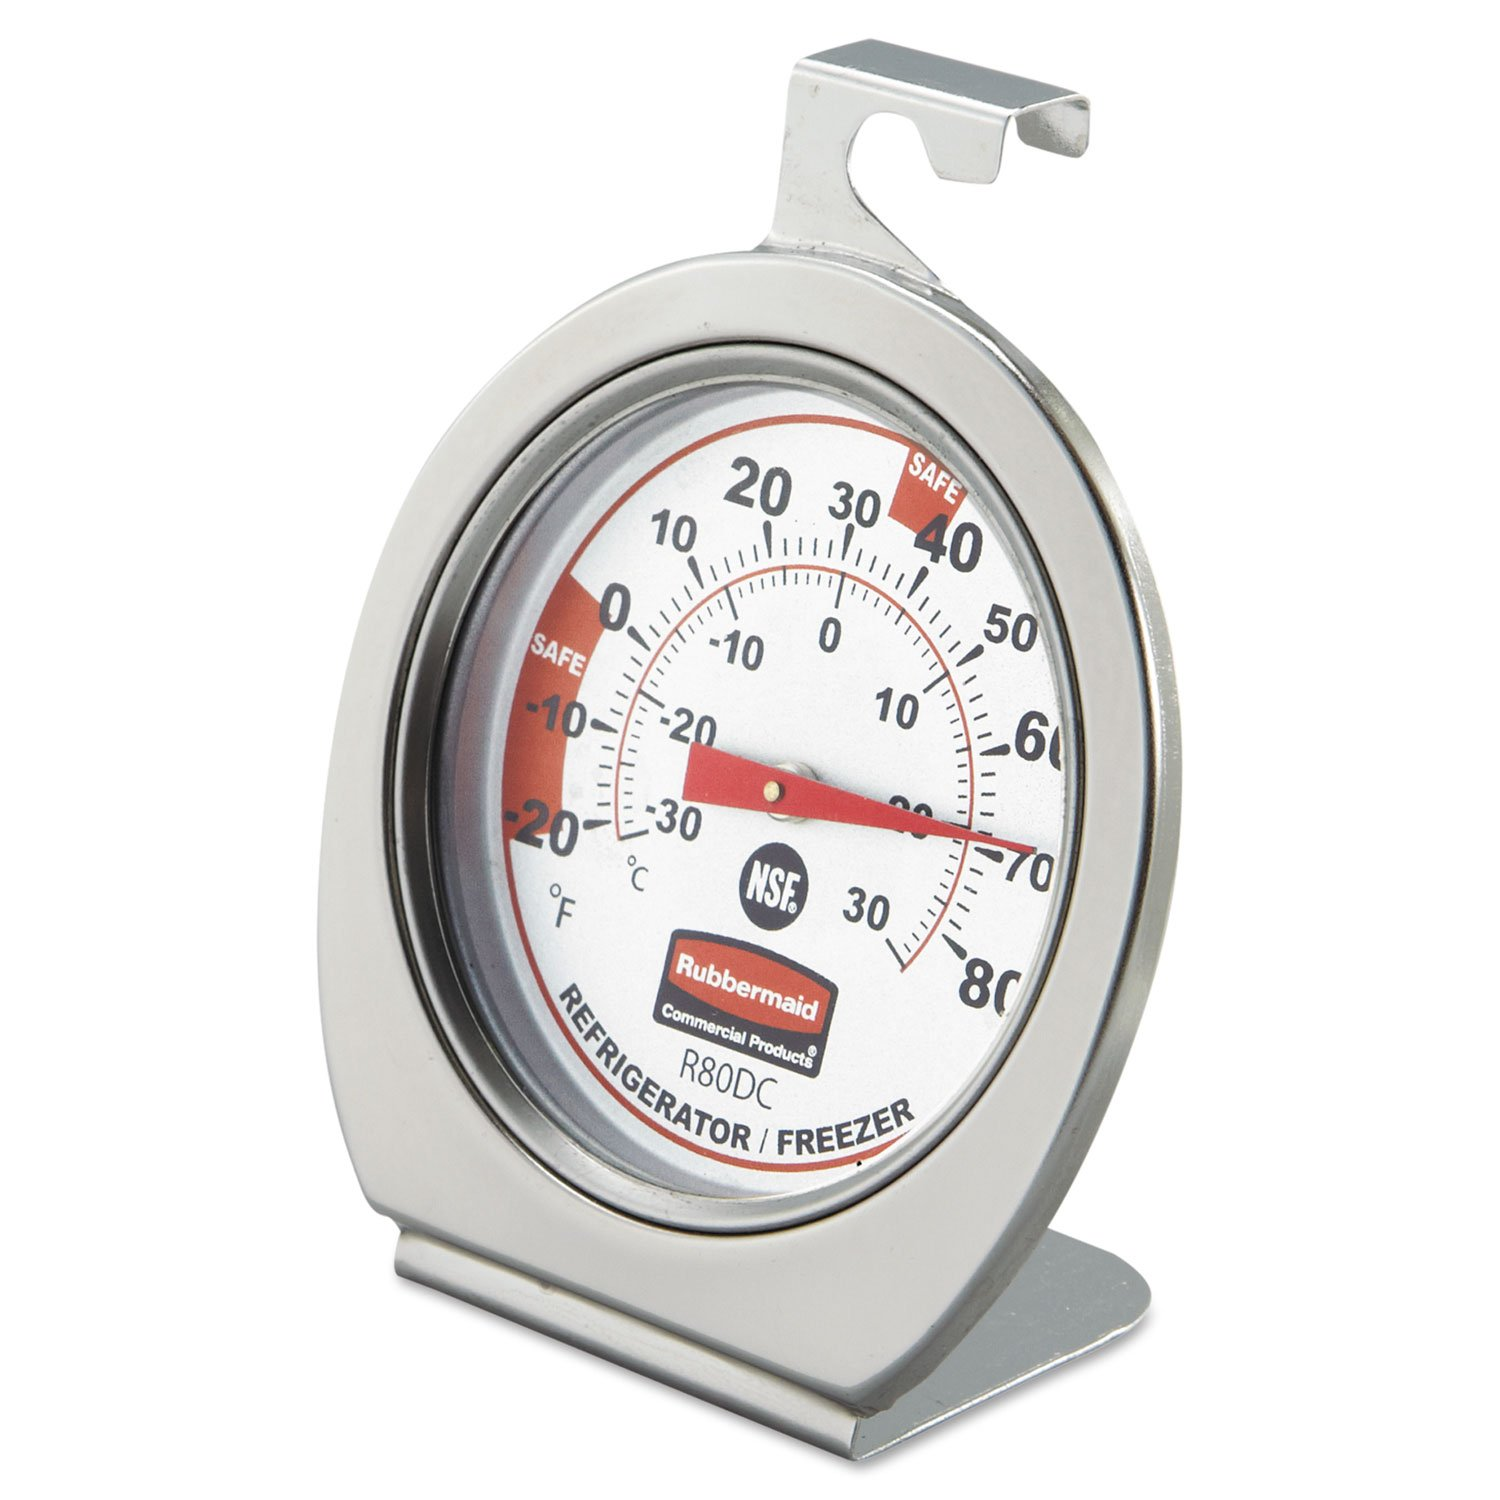 Refrigerator/freezer Monitoring Thermometer, -20f To 80f Tools Equipment Hand Tools